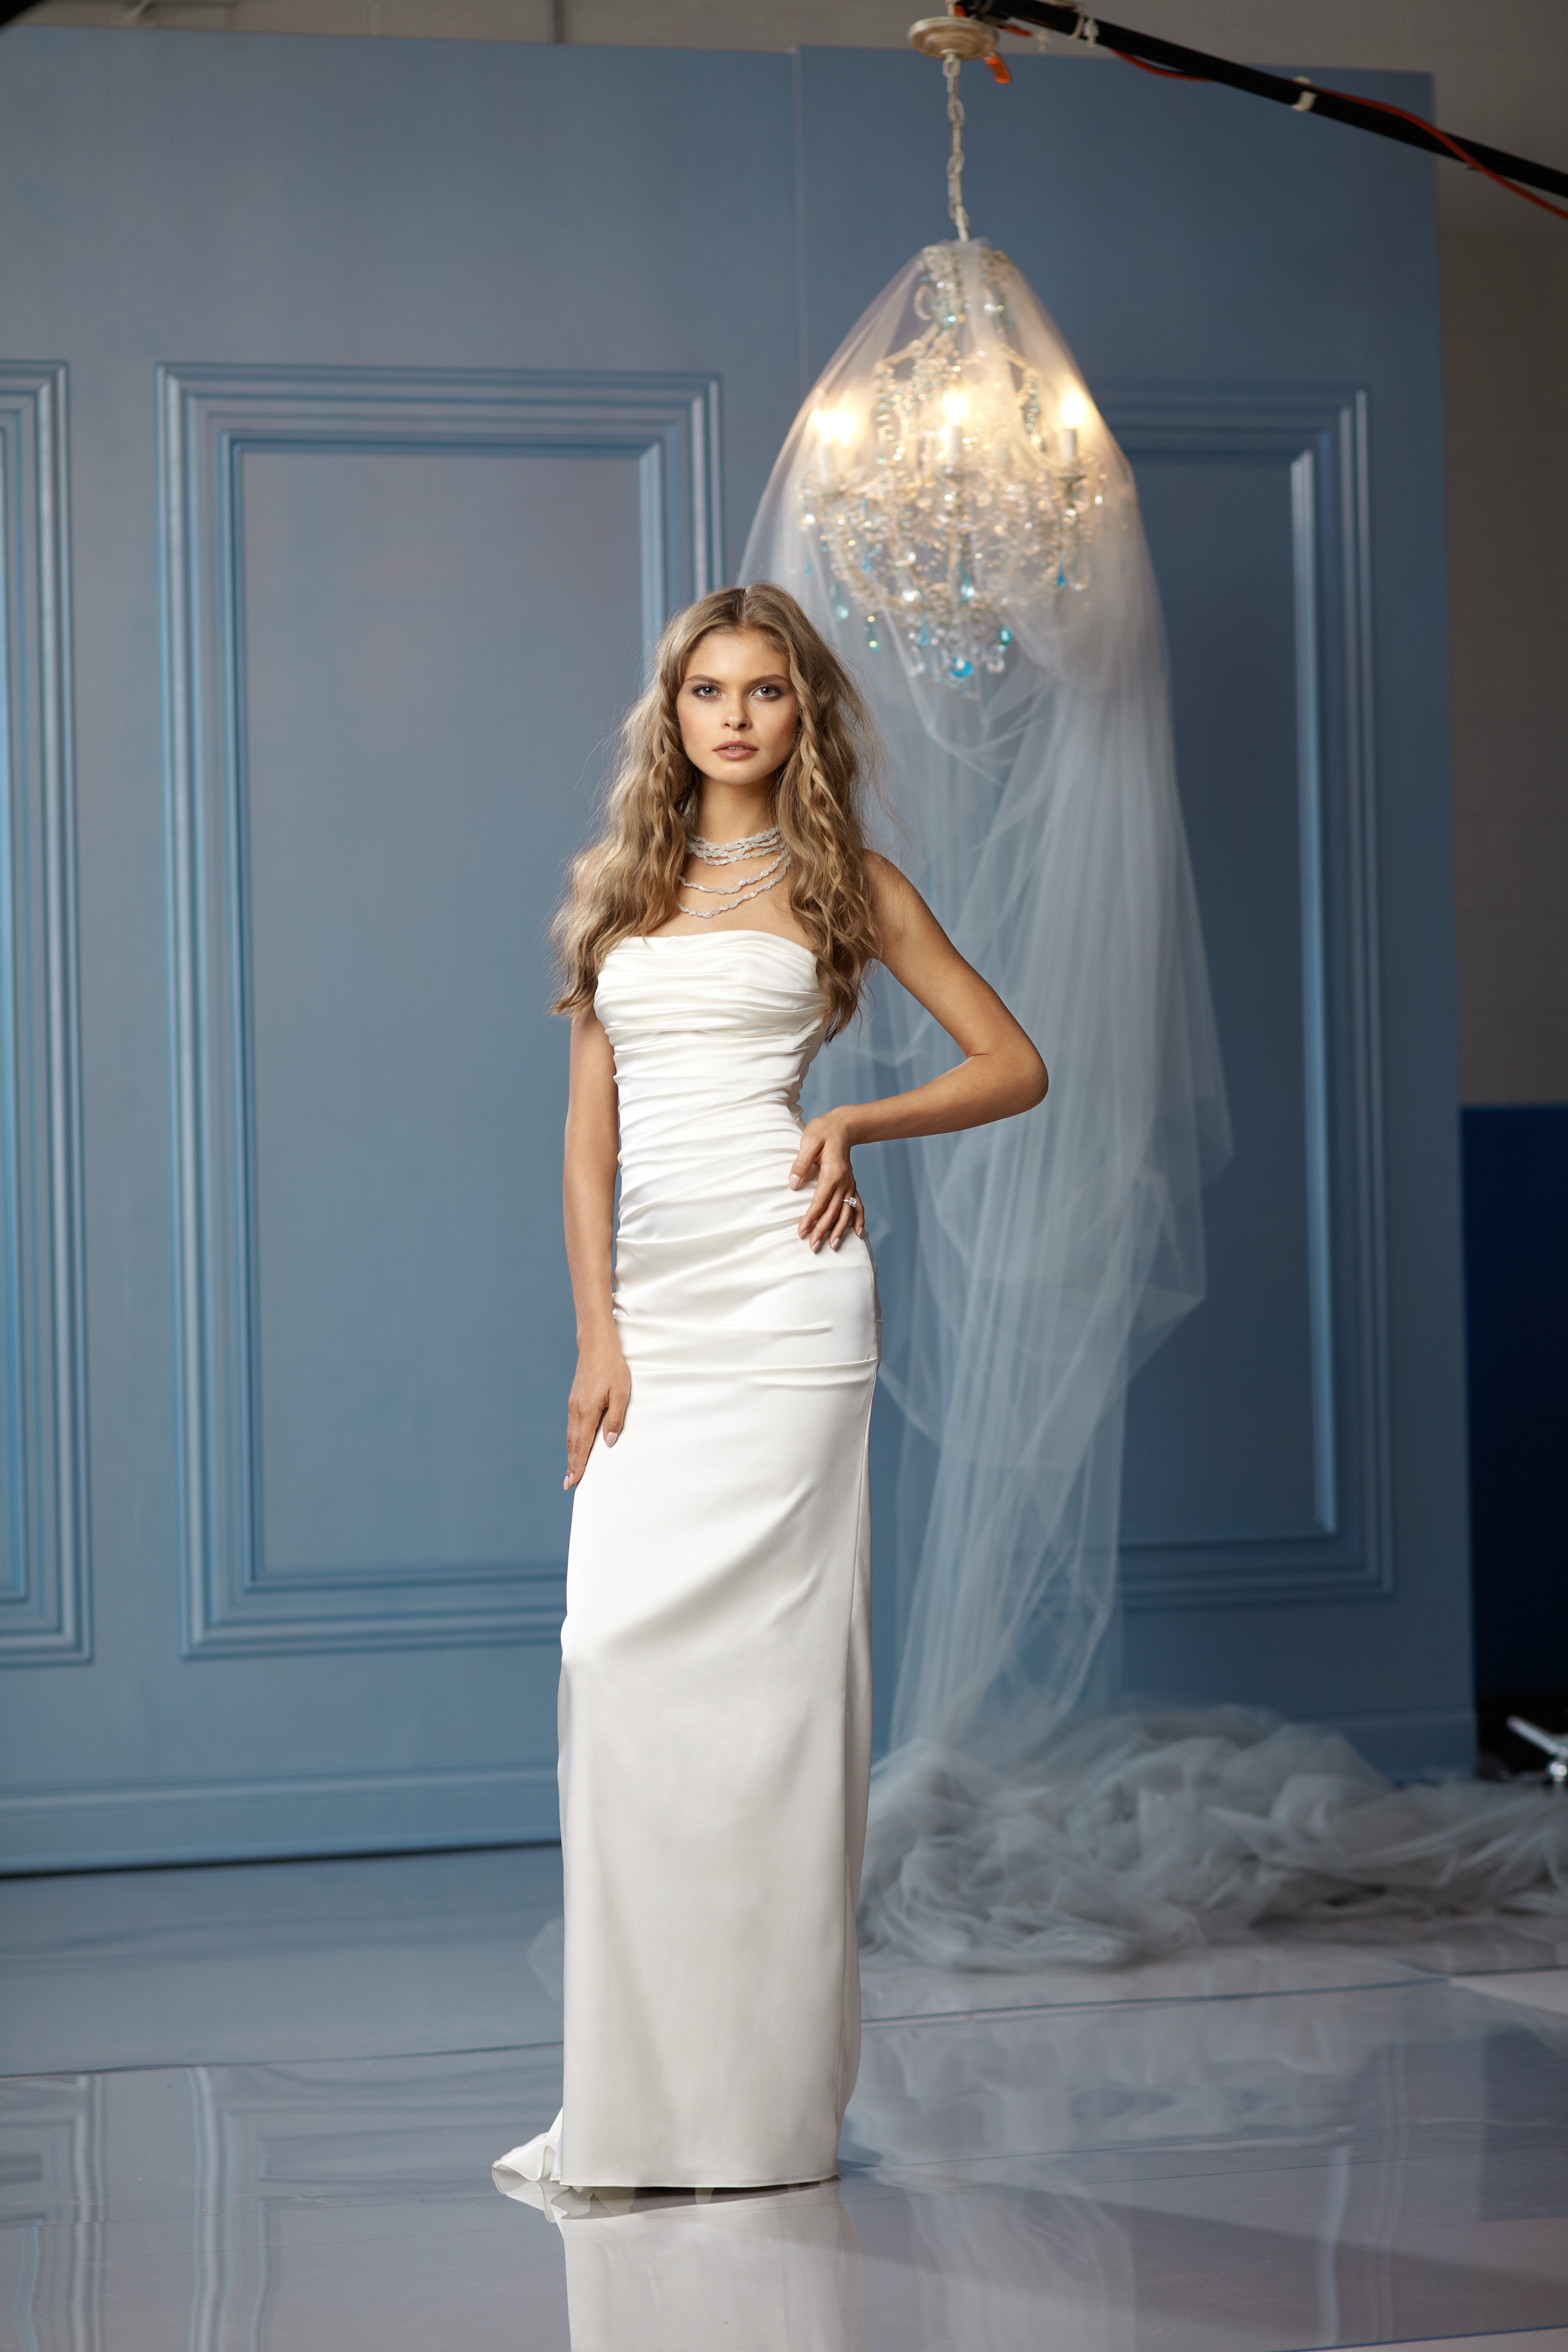 Mermaid Wedding Dresses, Romantic Wedding Dresses, Beach Wedding Dresses, Fashion, white, ivory, Beach, Spring, Summer, Fall, Winter, Classic, Romantic, Strapless, Strapless Wedding Dresses, Satin, Floor, Wedding dress, Natural, Sleeveless, Fit-n-Flare, Spring Wedding Dresses, Classic Wedding Dresses, Wtoo Brides, winter wedding dresses, satin wedding dresses, Fall Wedding Dresses, Summer Wedding Dresses, Floor Wedding Dresses